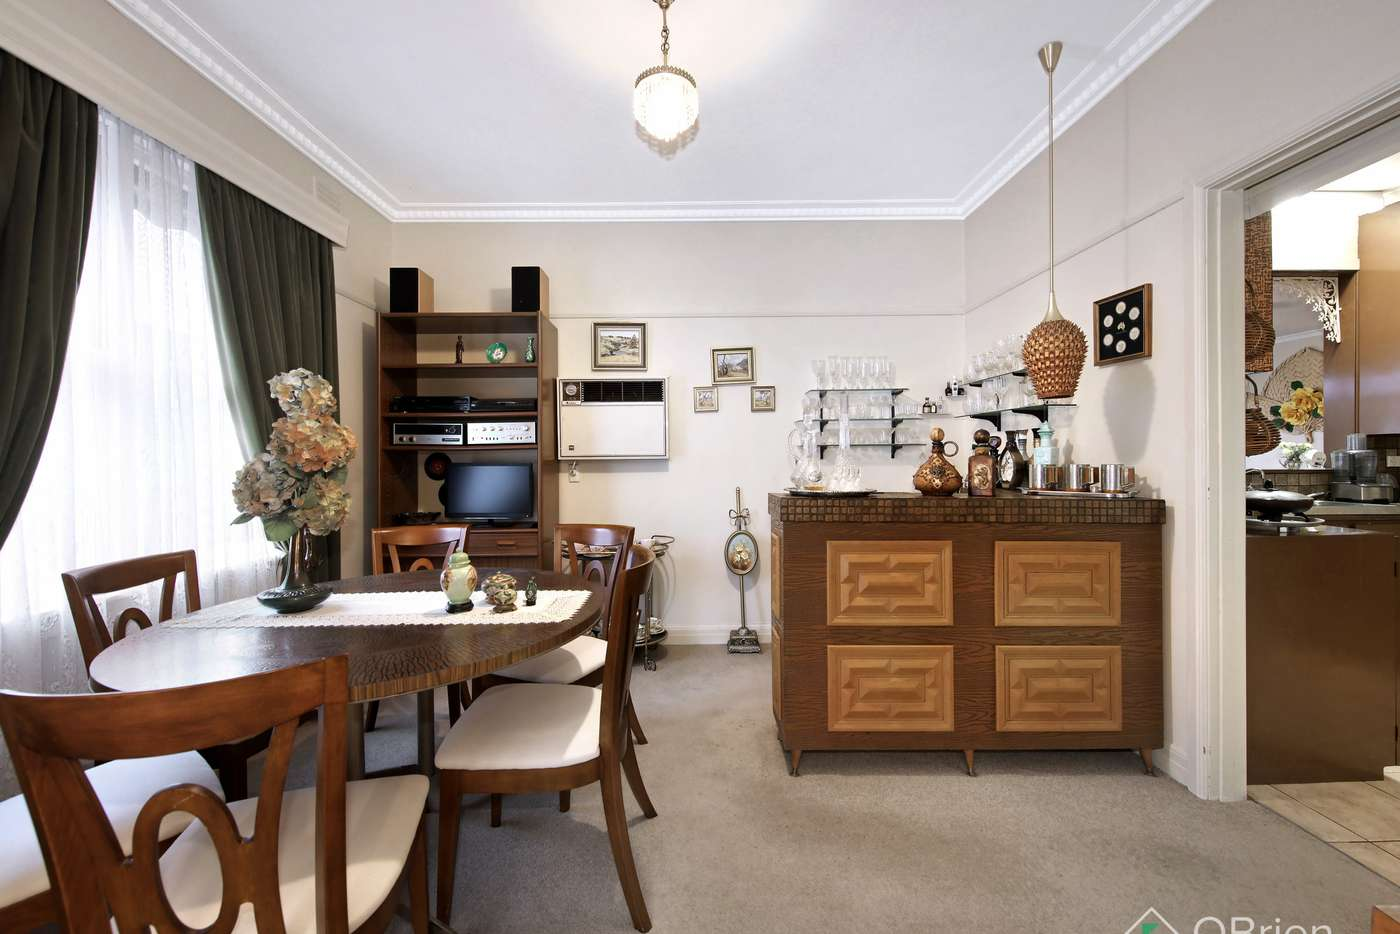 Sixth view of Homely house listing, 16 Dermot Street, Oakleigh South VIC 3167